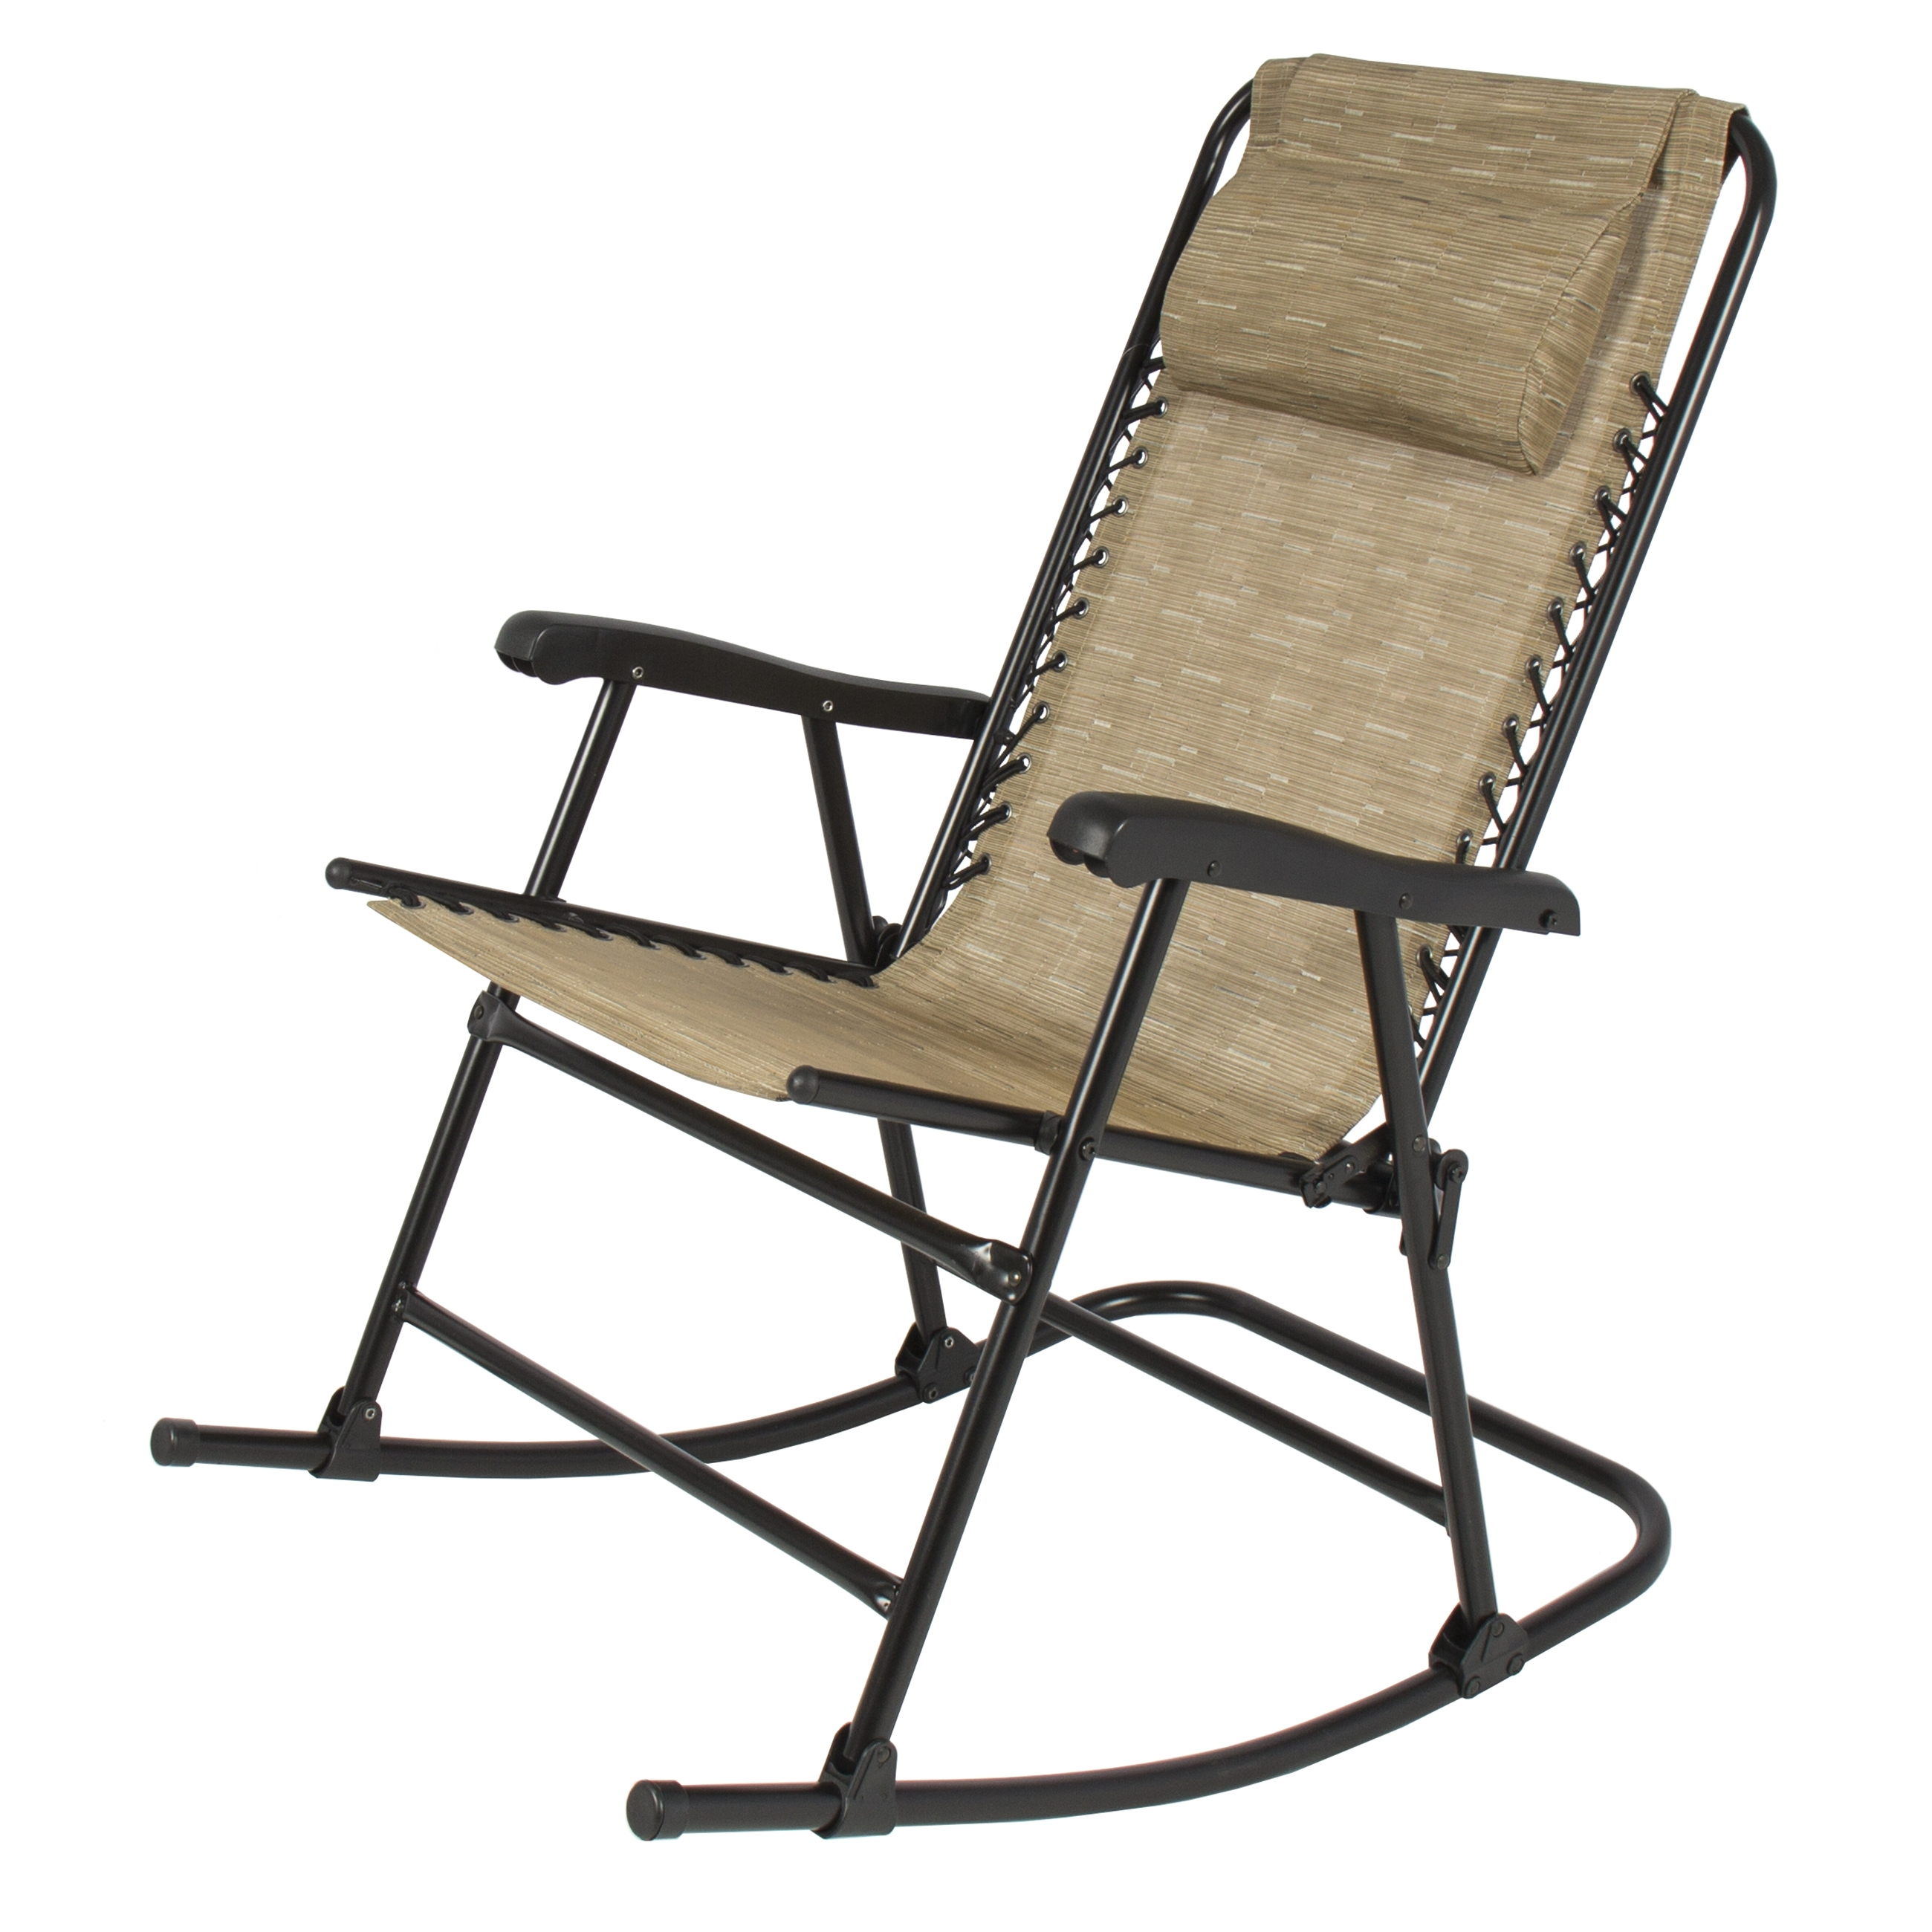 Lovely Patio Rocking Chairs Folding Rocking Chair Foldable Rocker In Latest Aluminum Patio Rocking Chairs (View 9 of 15)